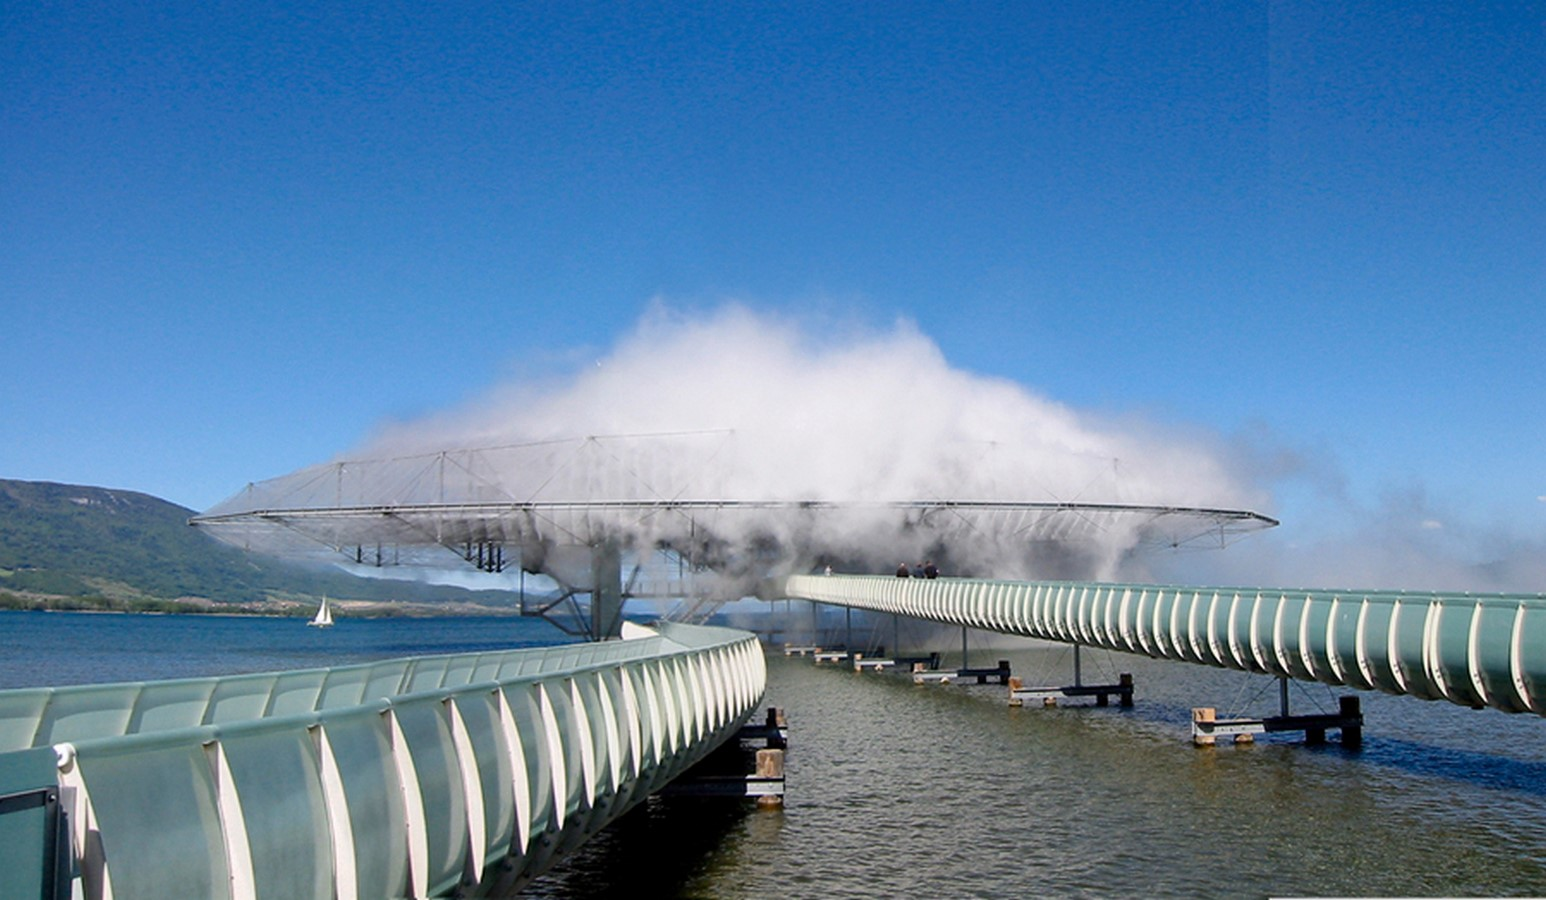 Water Architecture- How architects construct around water - Sheet13